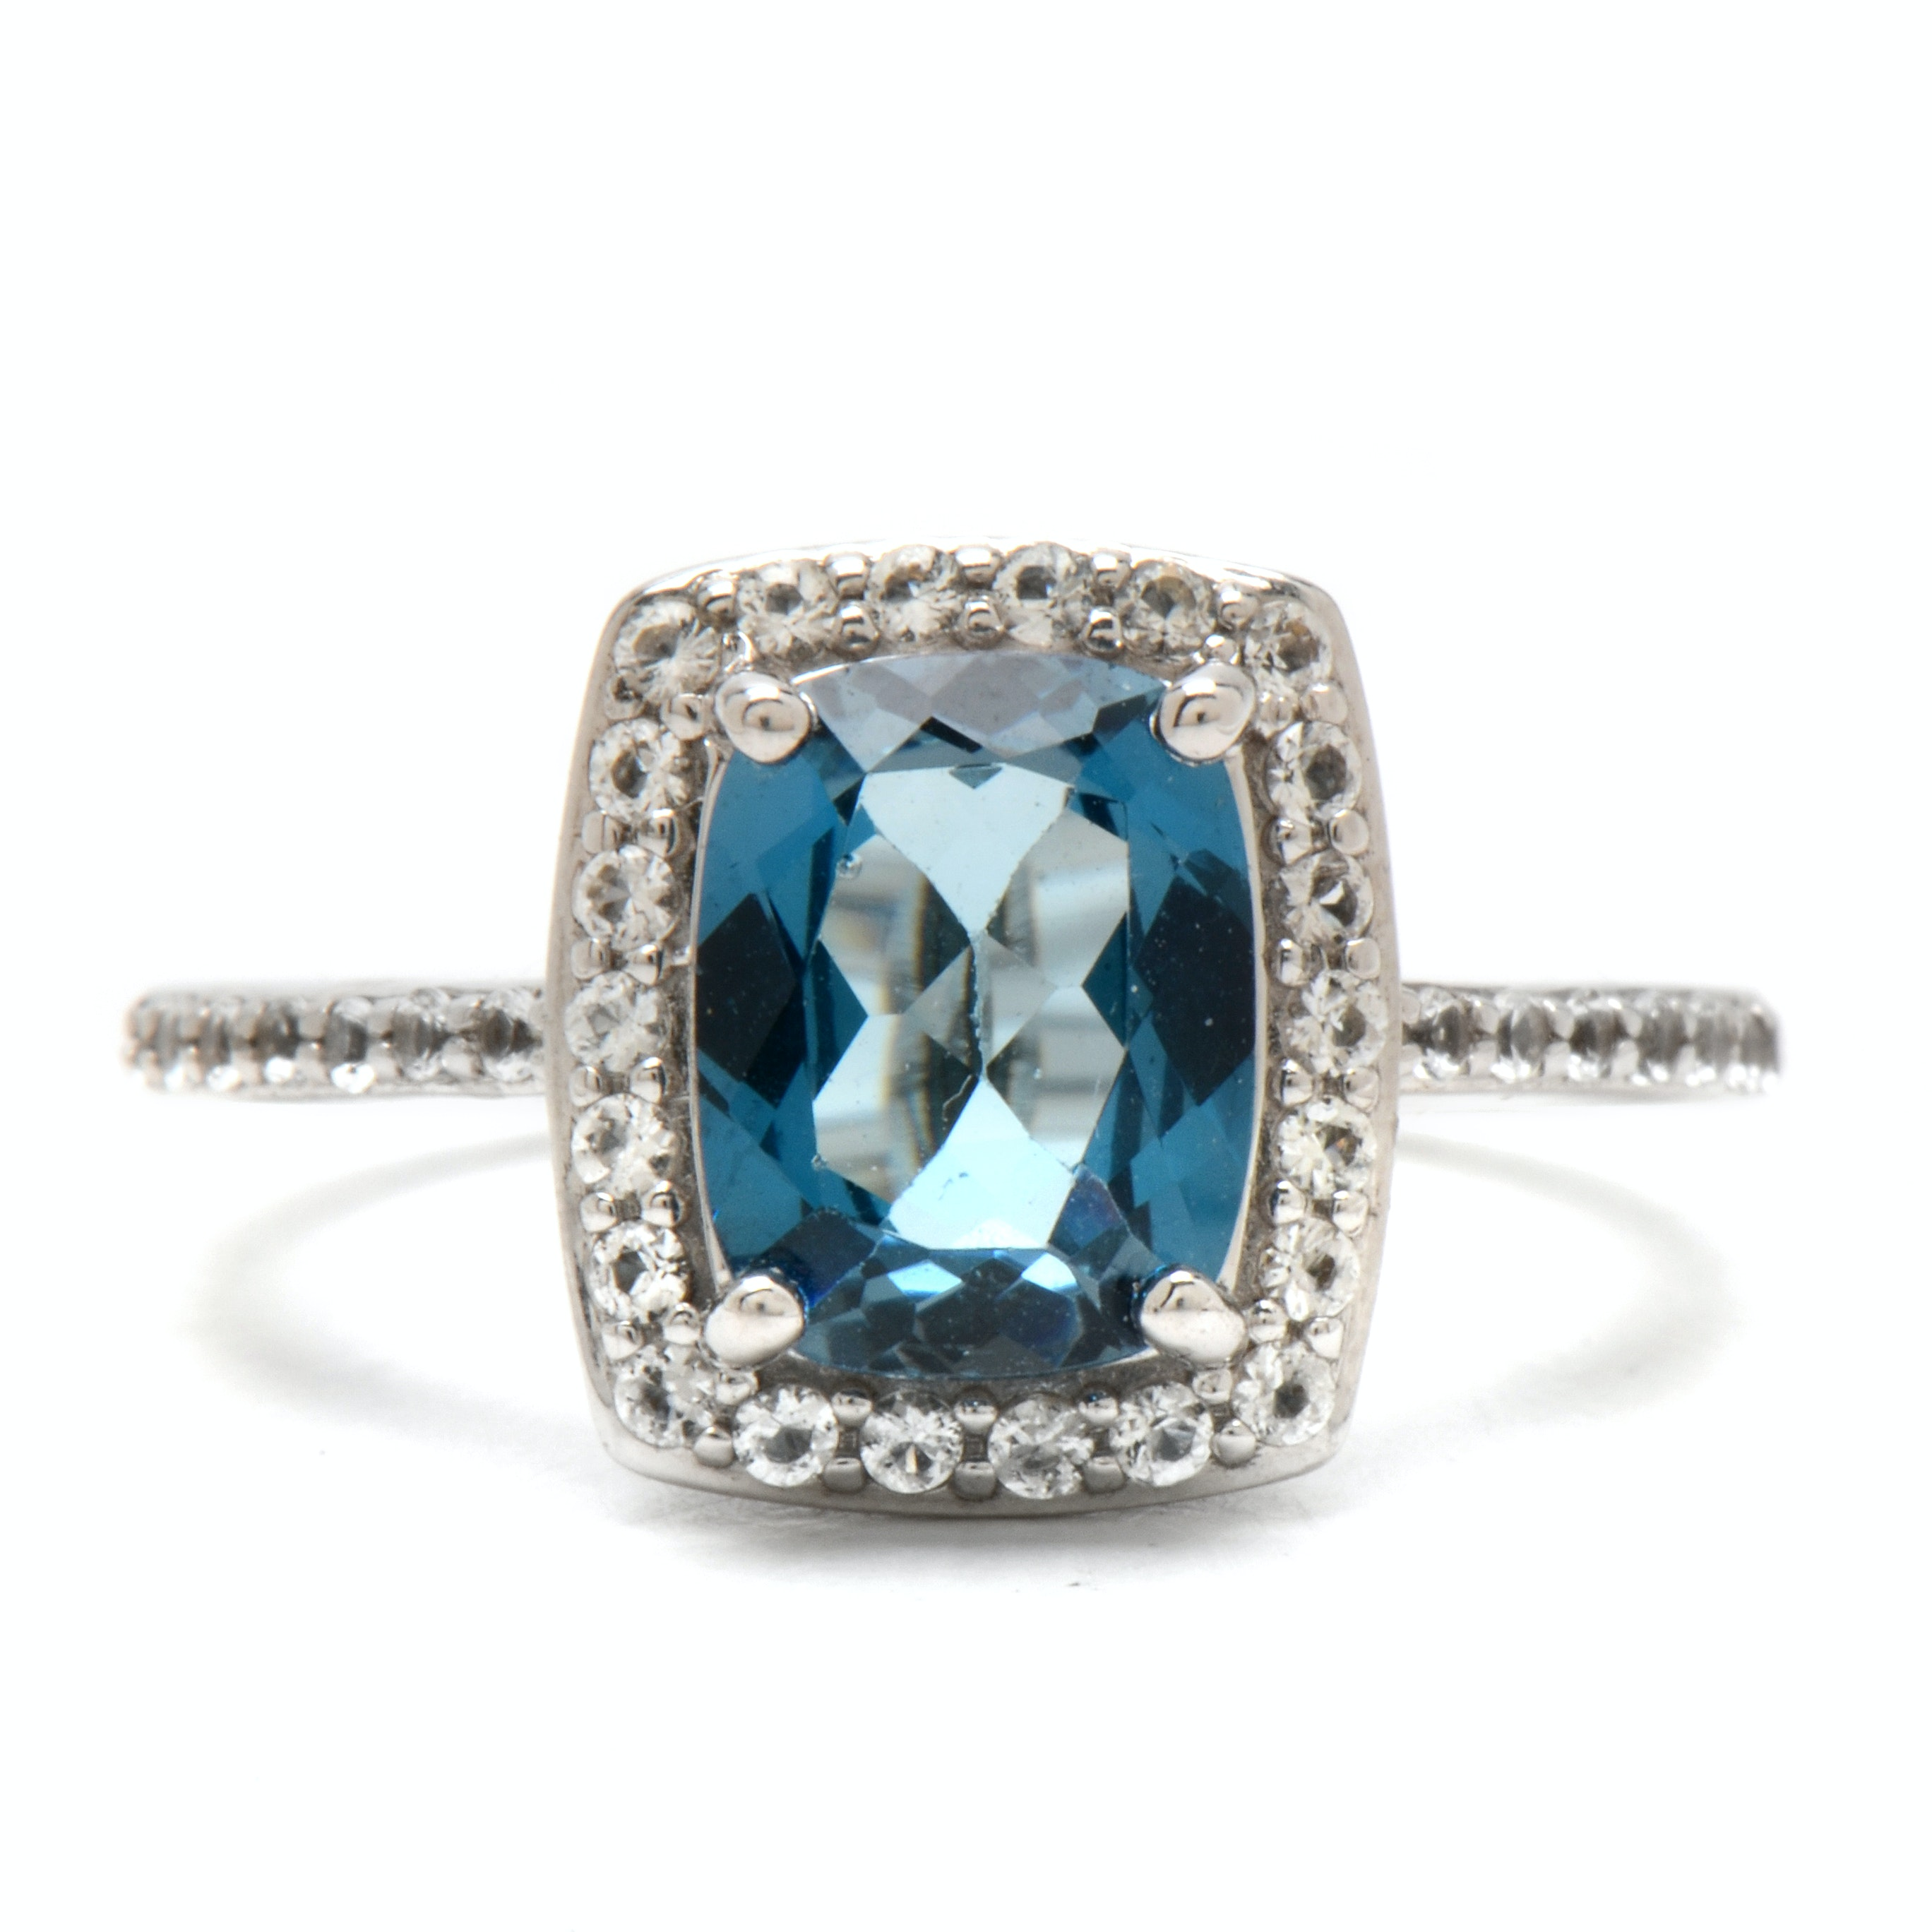 Sterling Silver Ring Featuring Blue and White Topaz Stones